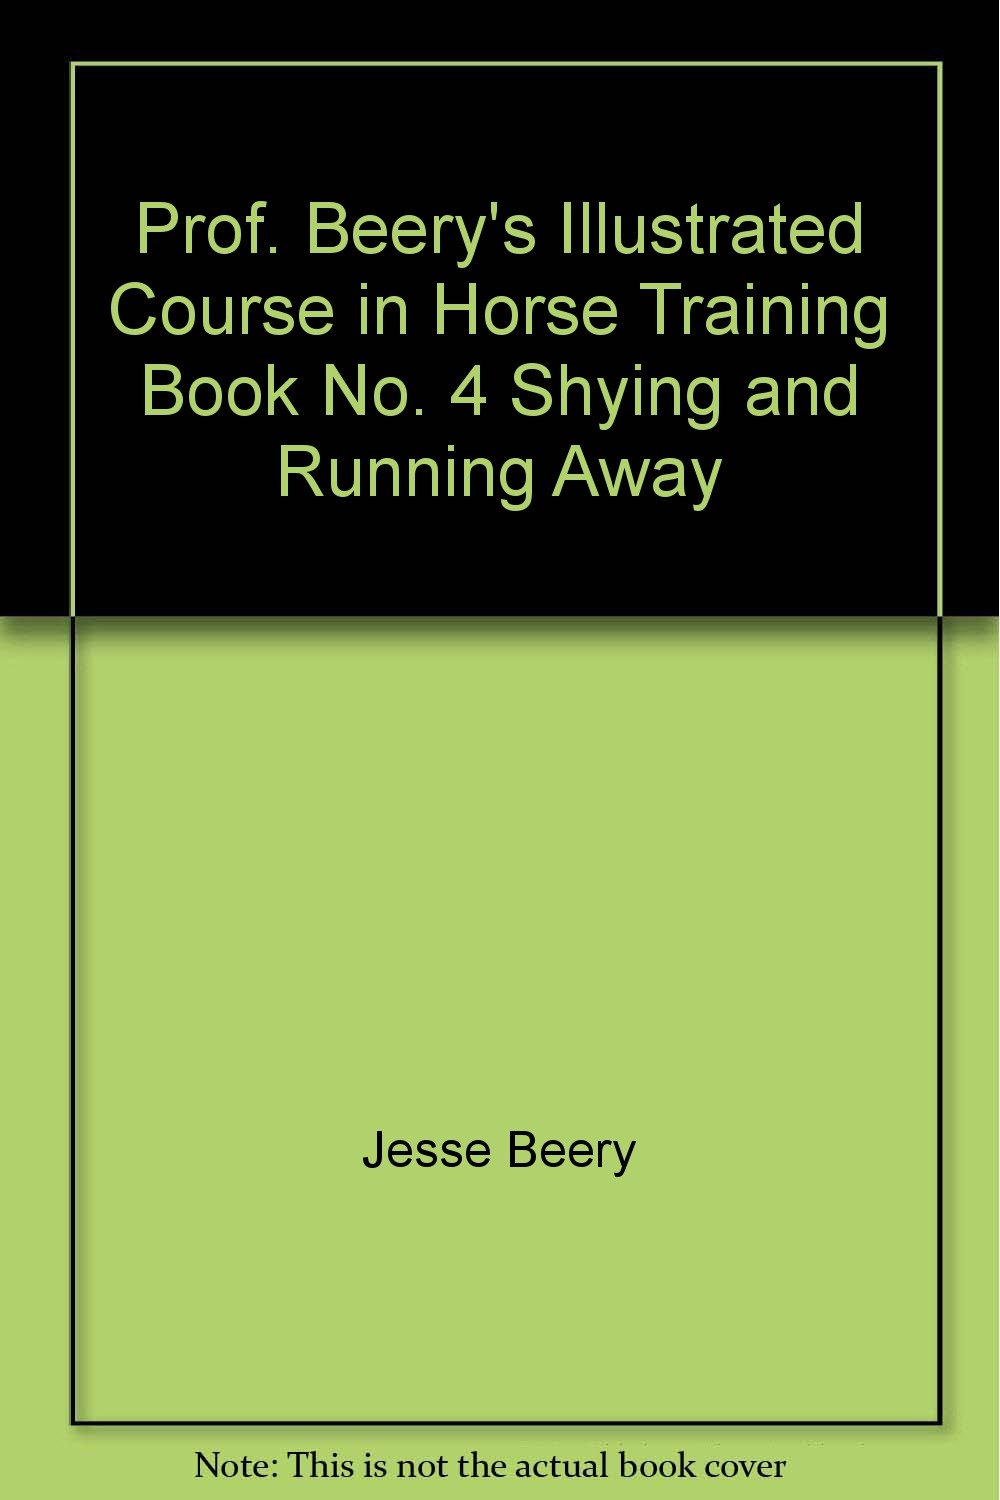 Prof. Beery's Illustrated Course in Horse Training Book No. 4 Shying and Running Away